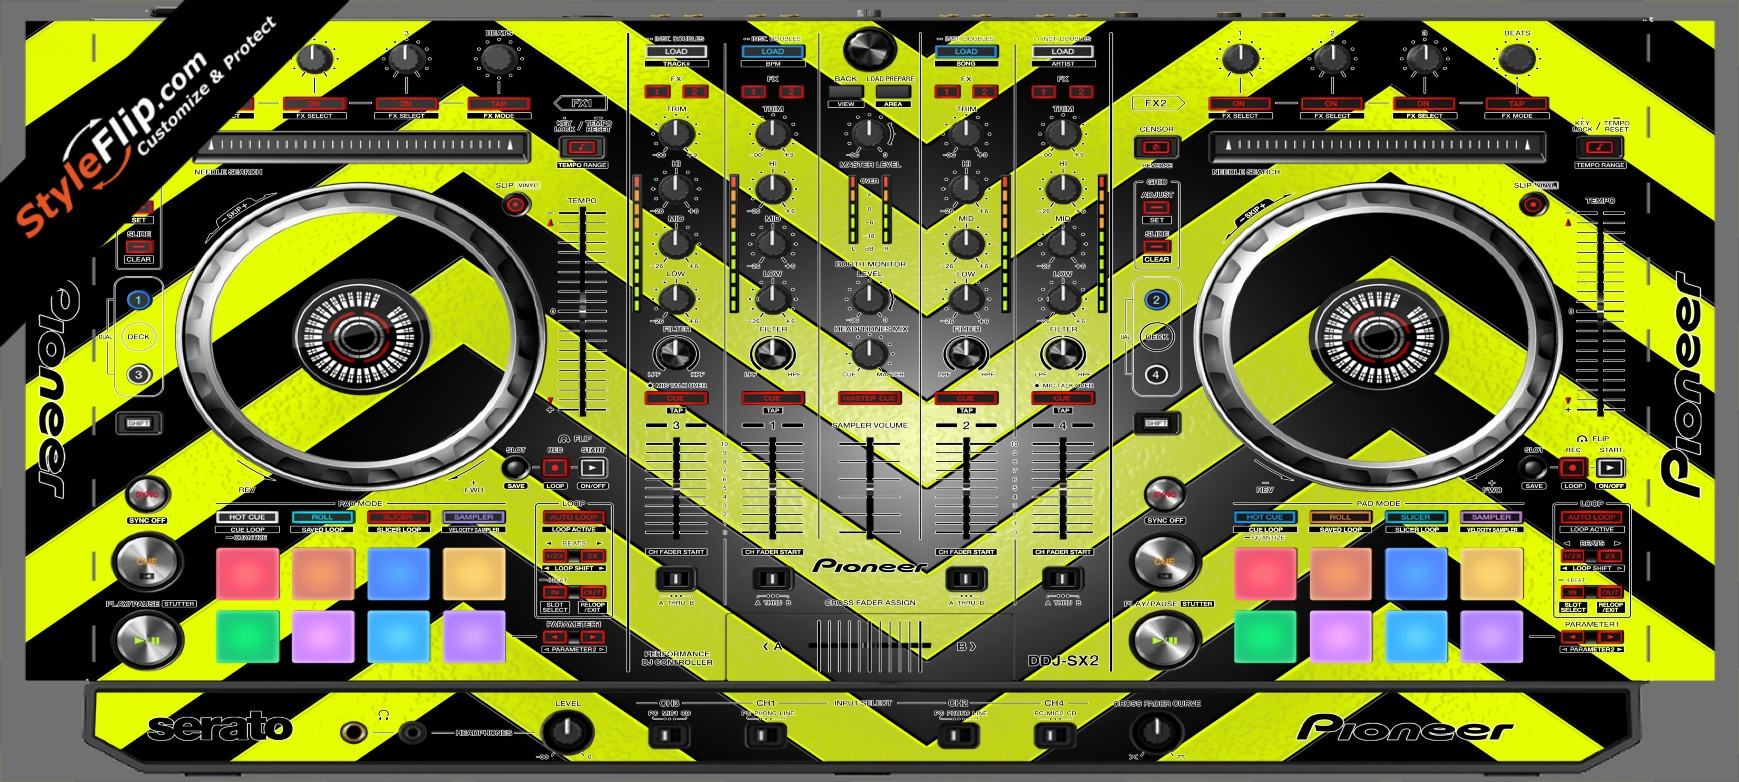 Black & Yellow Chevron Pioneer DDJ-SX2